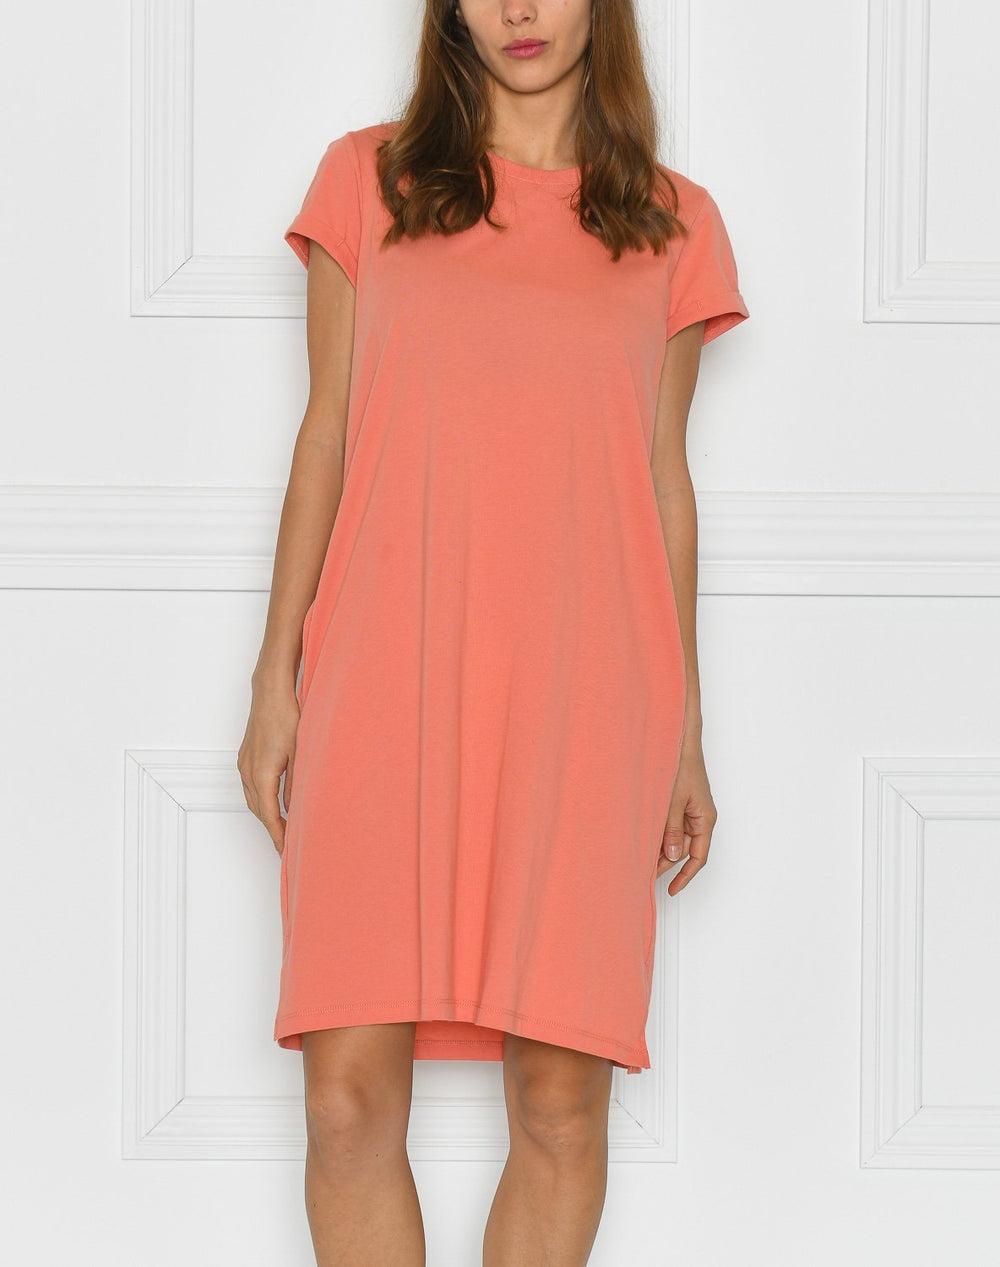 Saint Tropez BellSZ dress terra cotta - Online-Mode